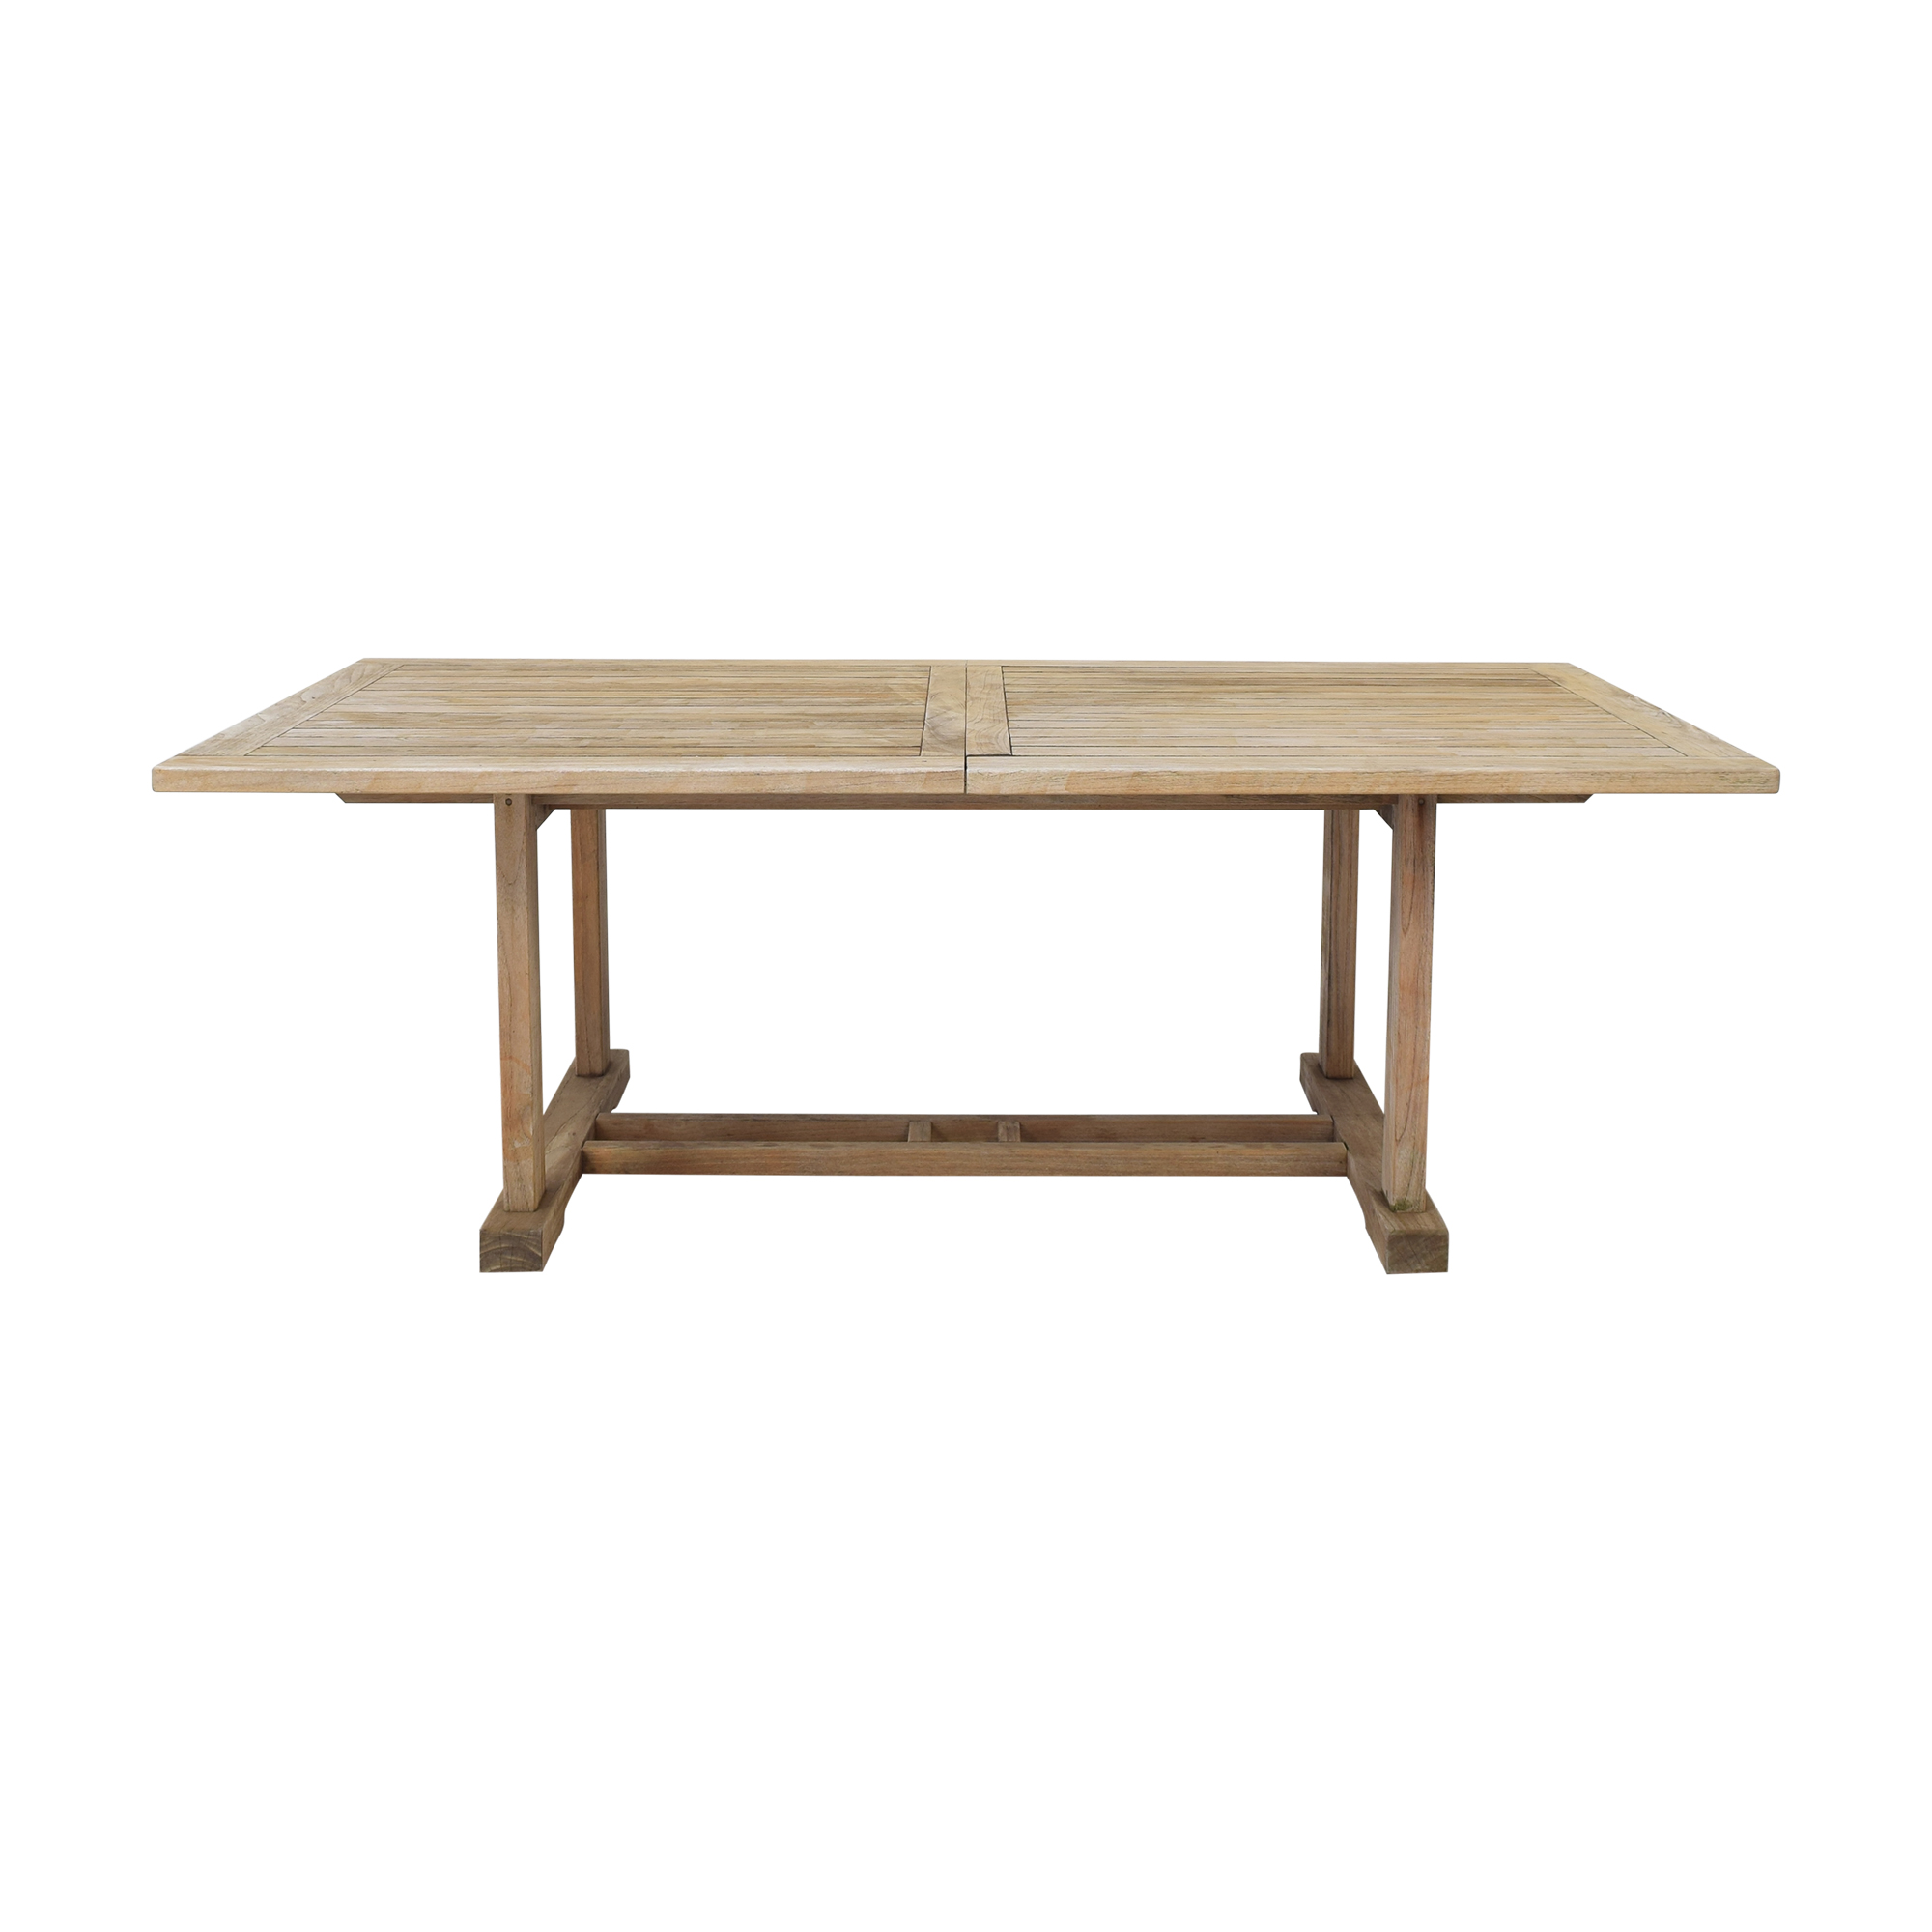 Gloster Gloster Rustic Dining Table dimensions